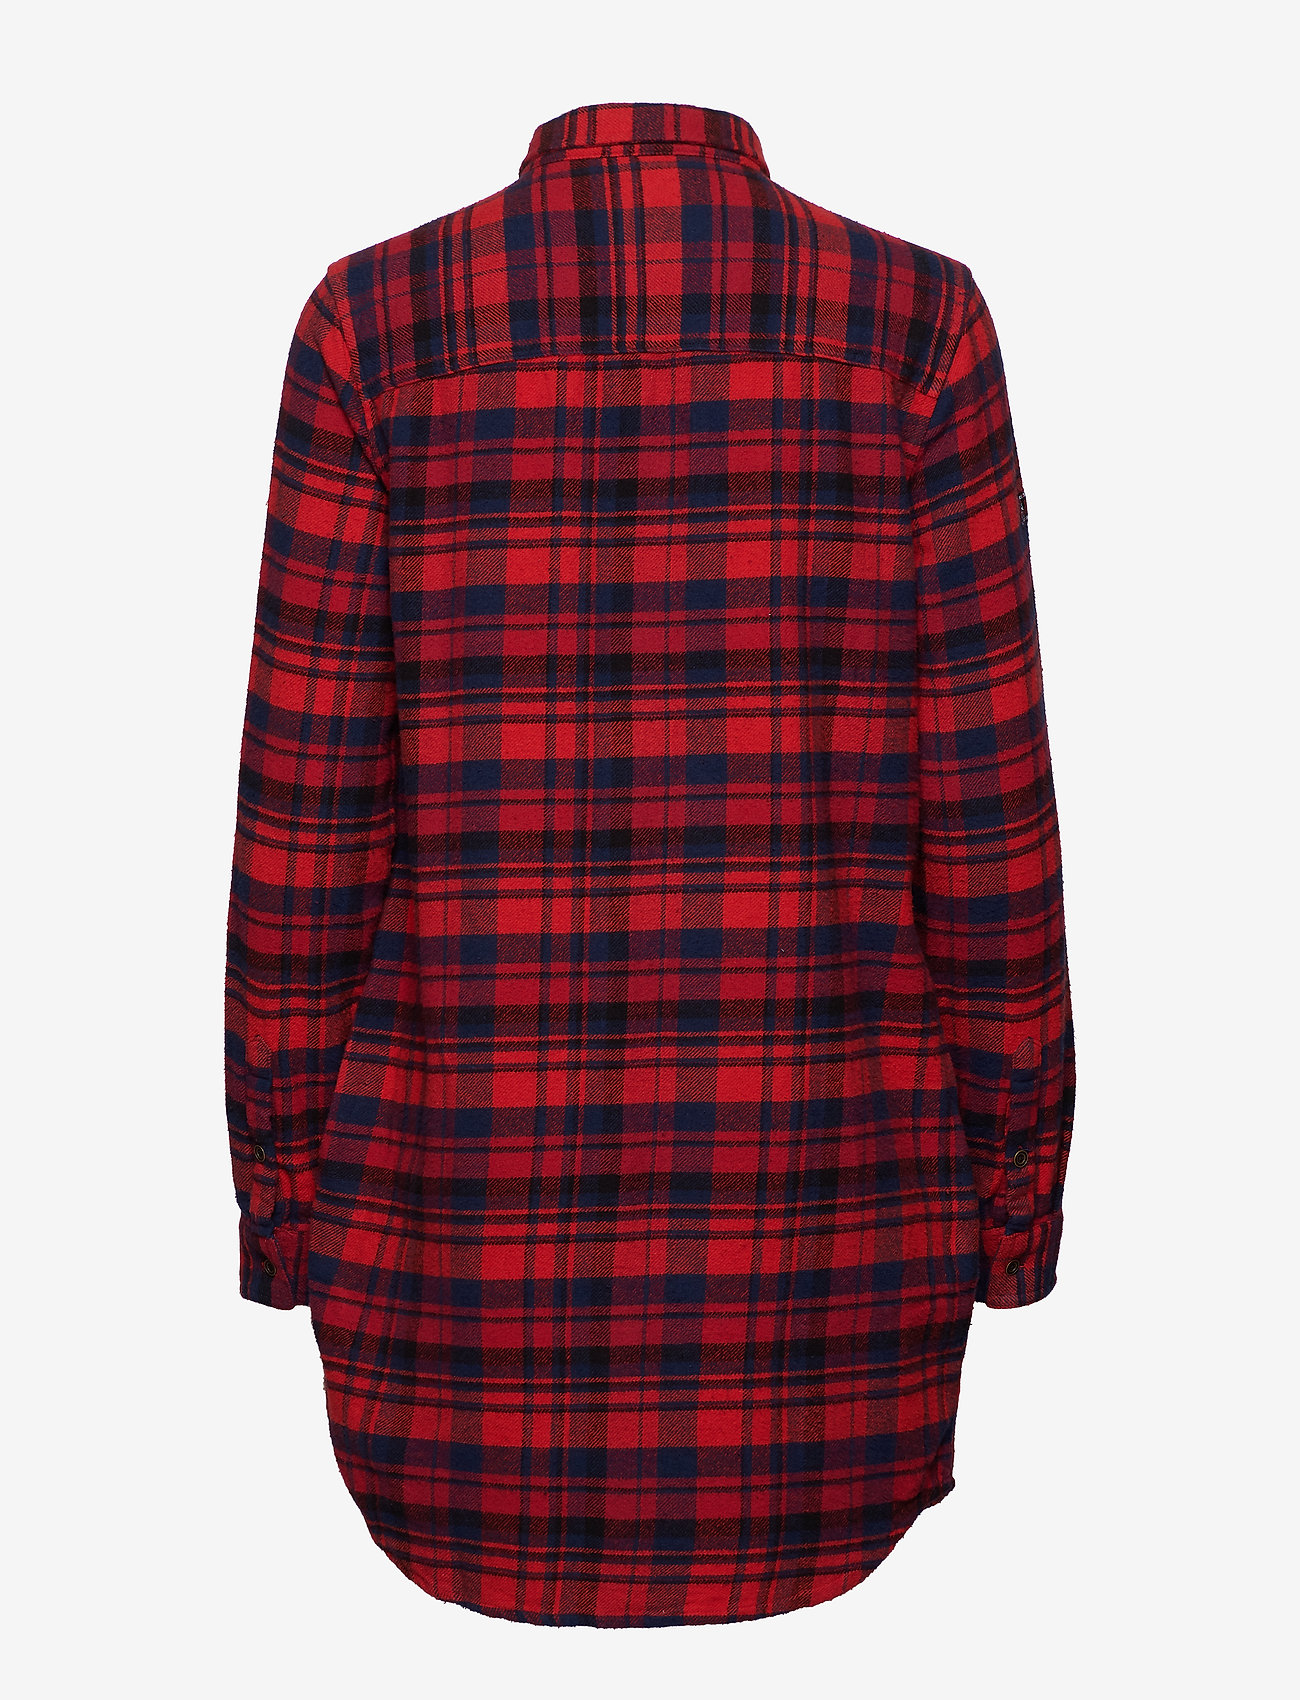 Superdry Willow Check Shirt Dress - Blouses & Shirts